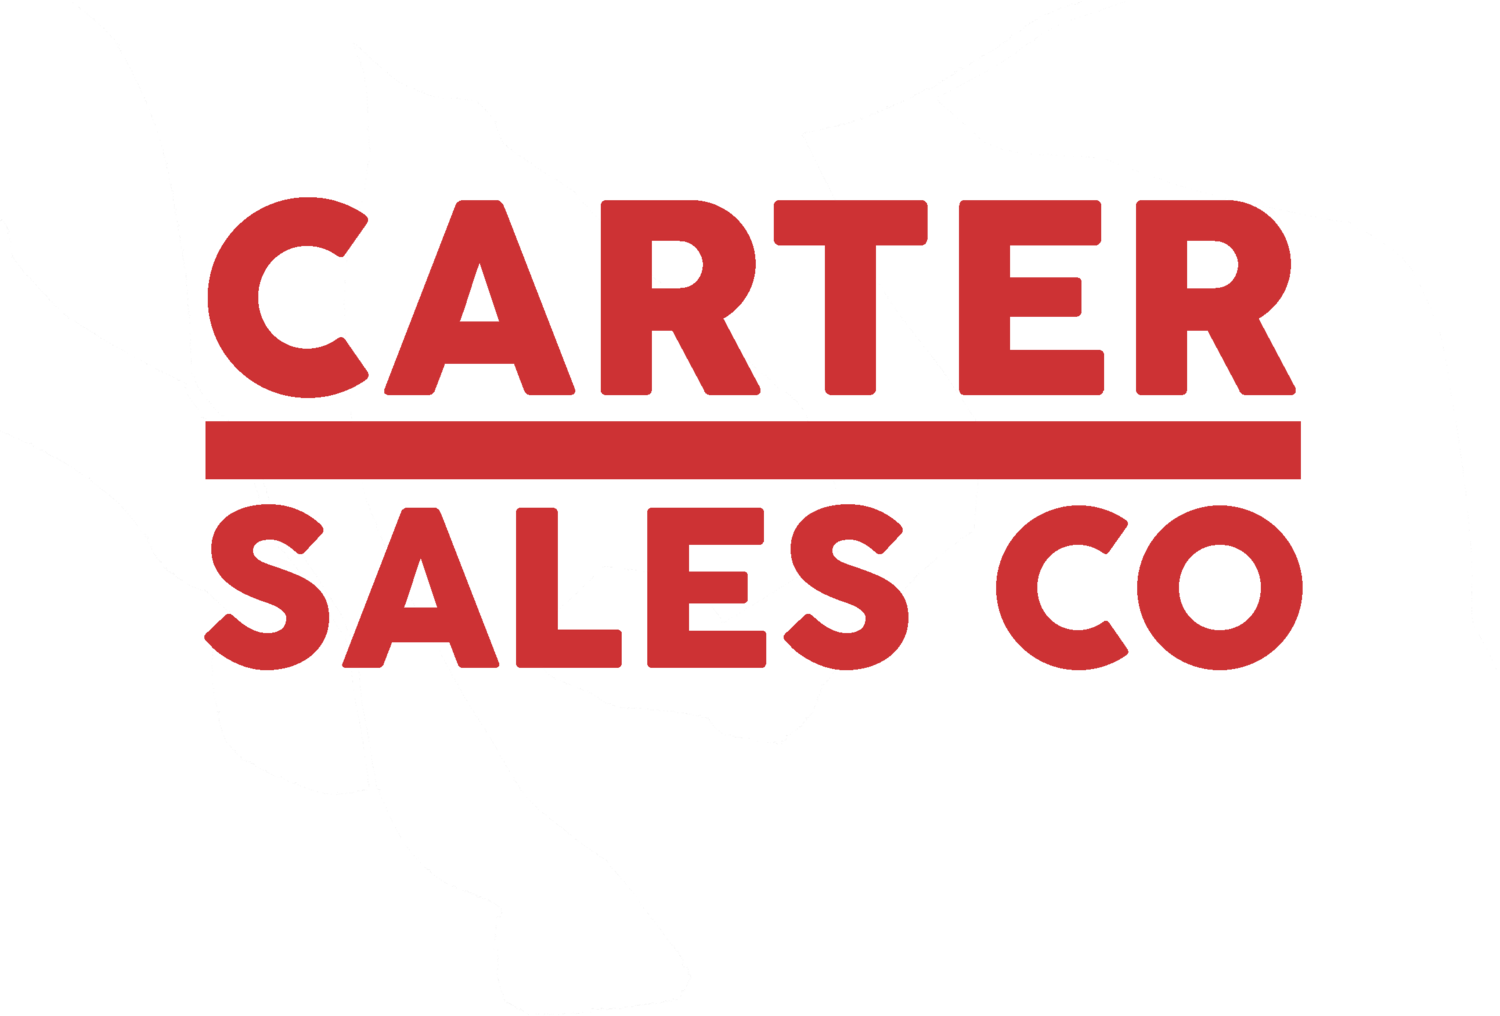 Carter Sales Co.